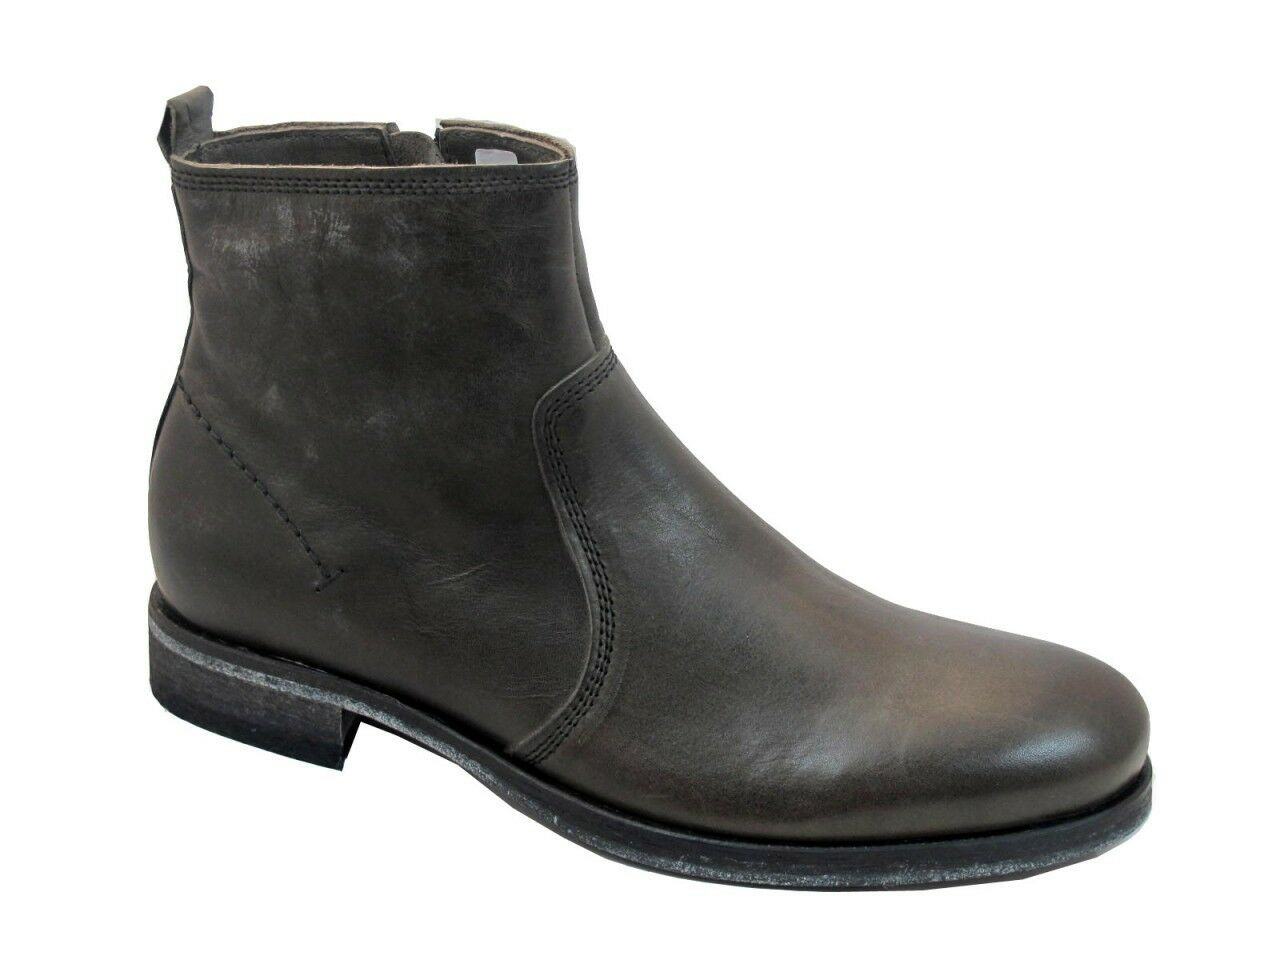 BASS EAGLE MEN'S DARK GREY WOOL INSULATED BOOTS $160.